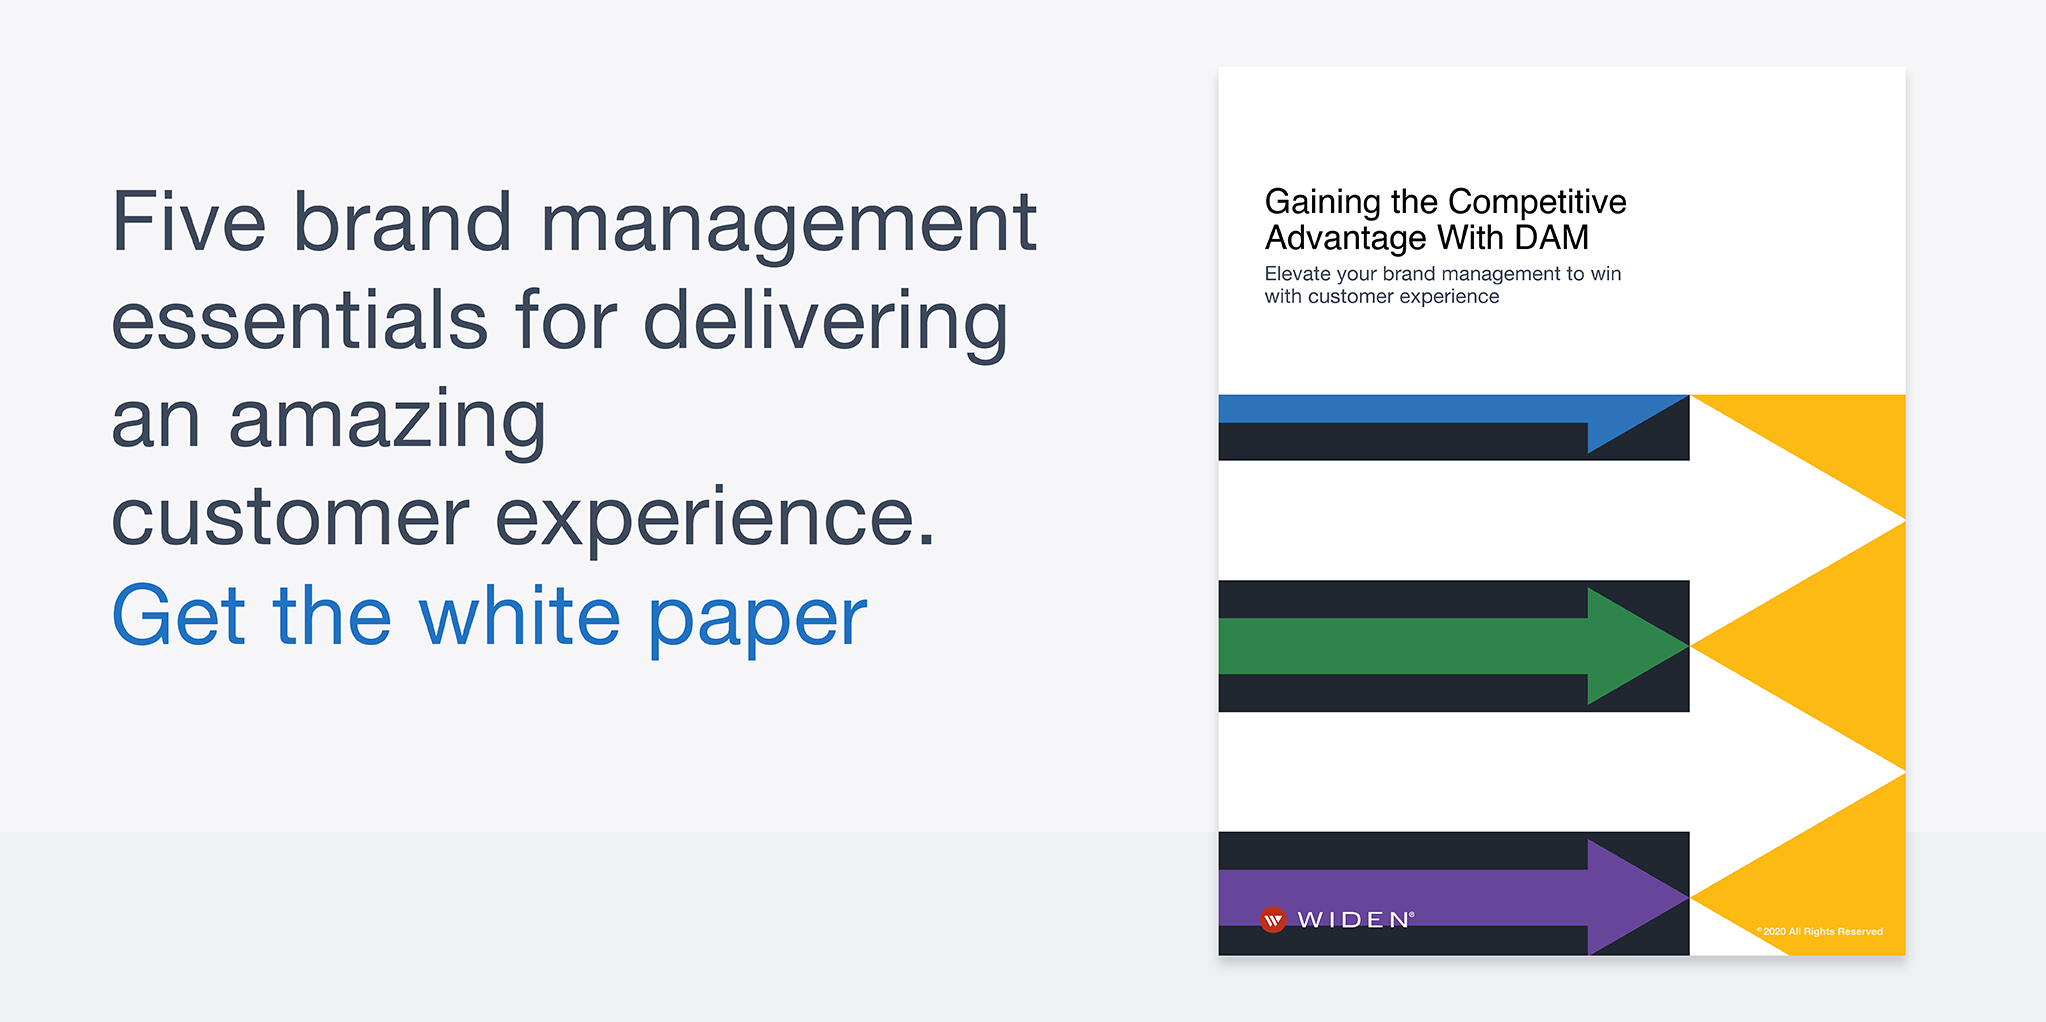 Gaining the Competitive Advantage With DAM white paper cover.